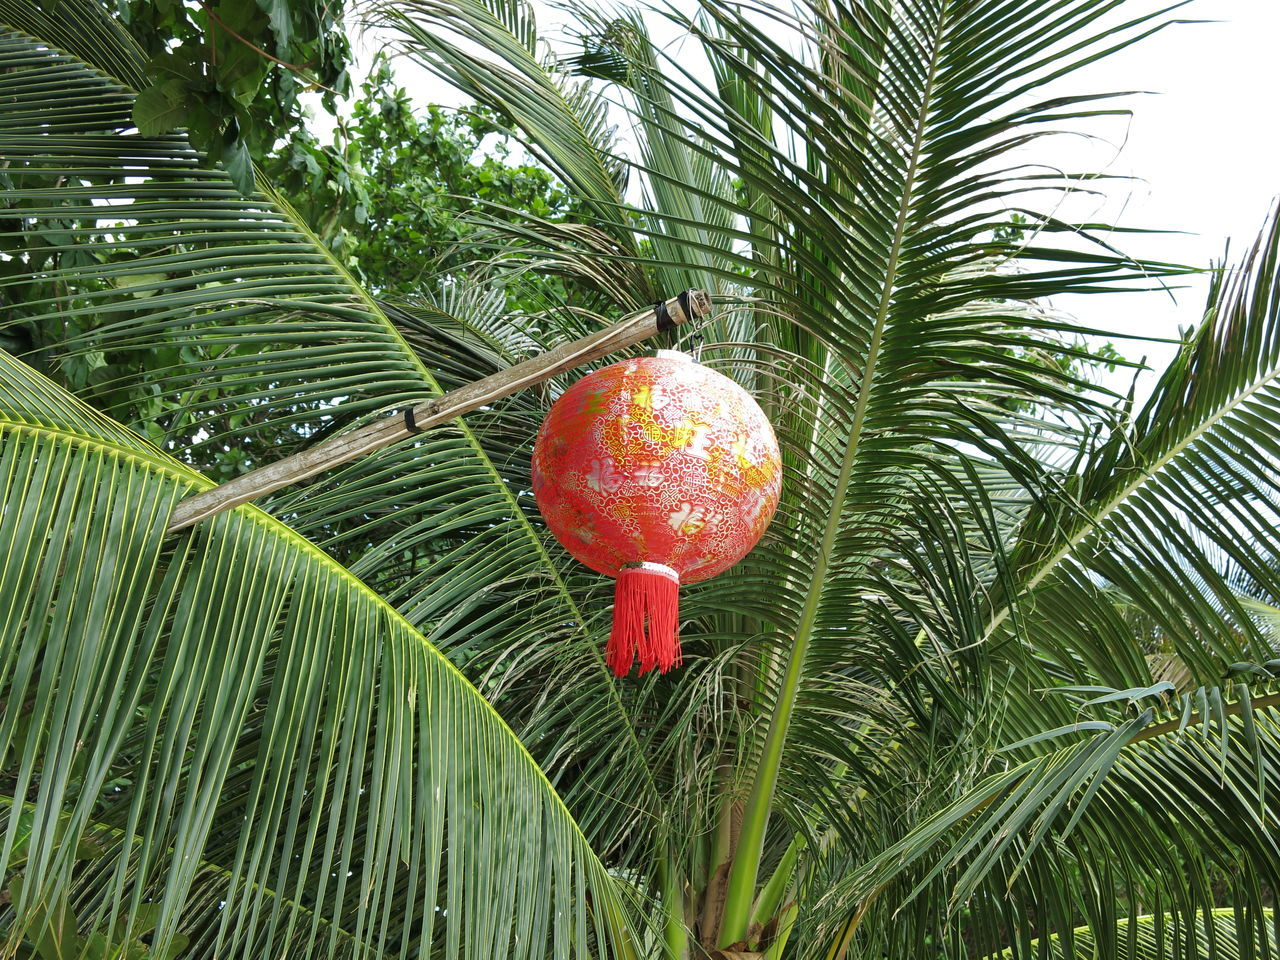 Lampion in a palm tree. Illumination of a restaurant at Ko Lanta / Thailand. Beauty In Nature Branch Day Fruit Green Color Growing Growth Illumination Invitation Lamp Lampion Leaf Nature No People Outdoors Palm Tree Red Tree